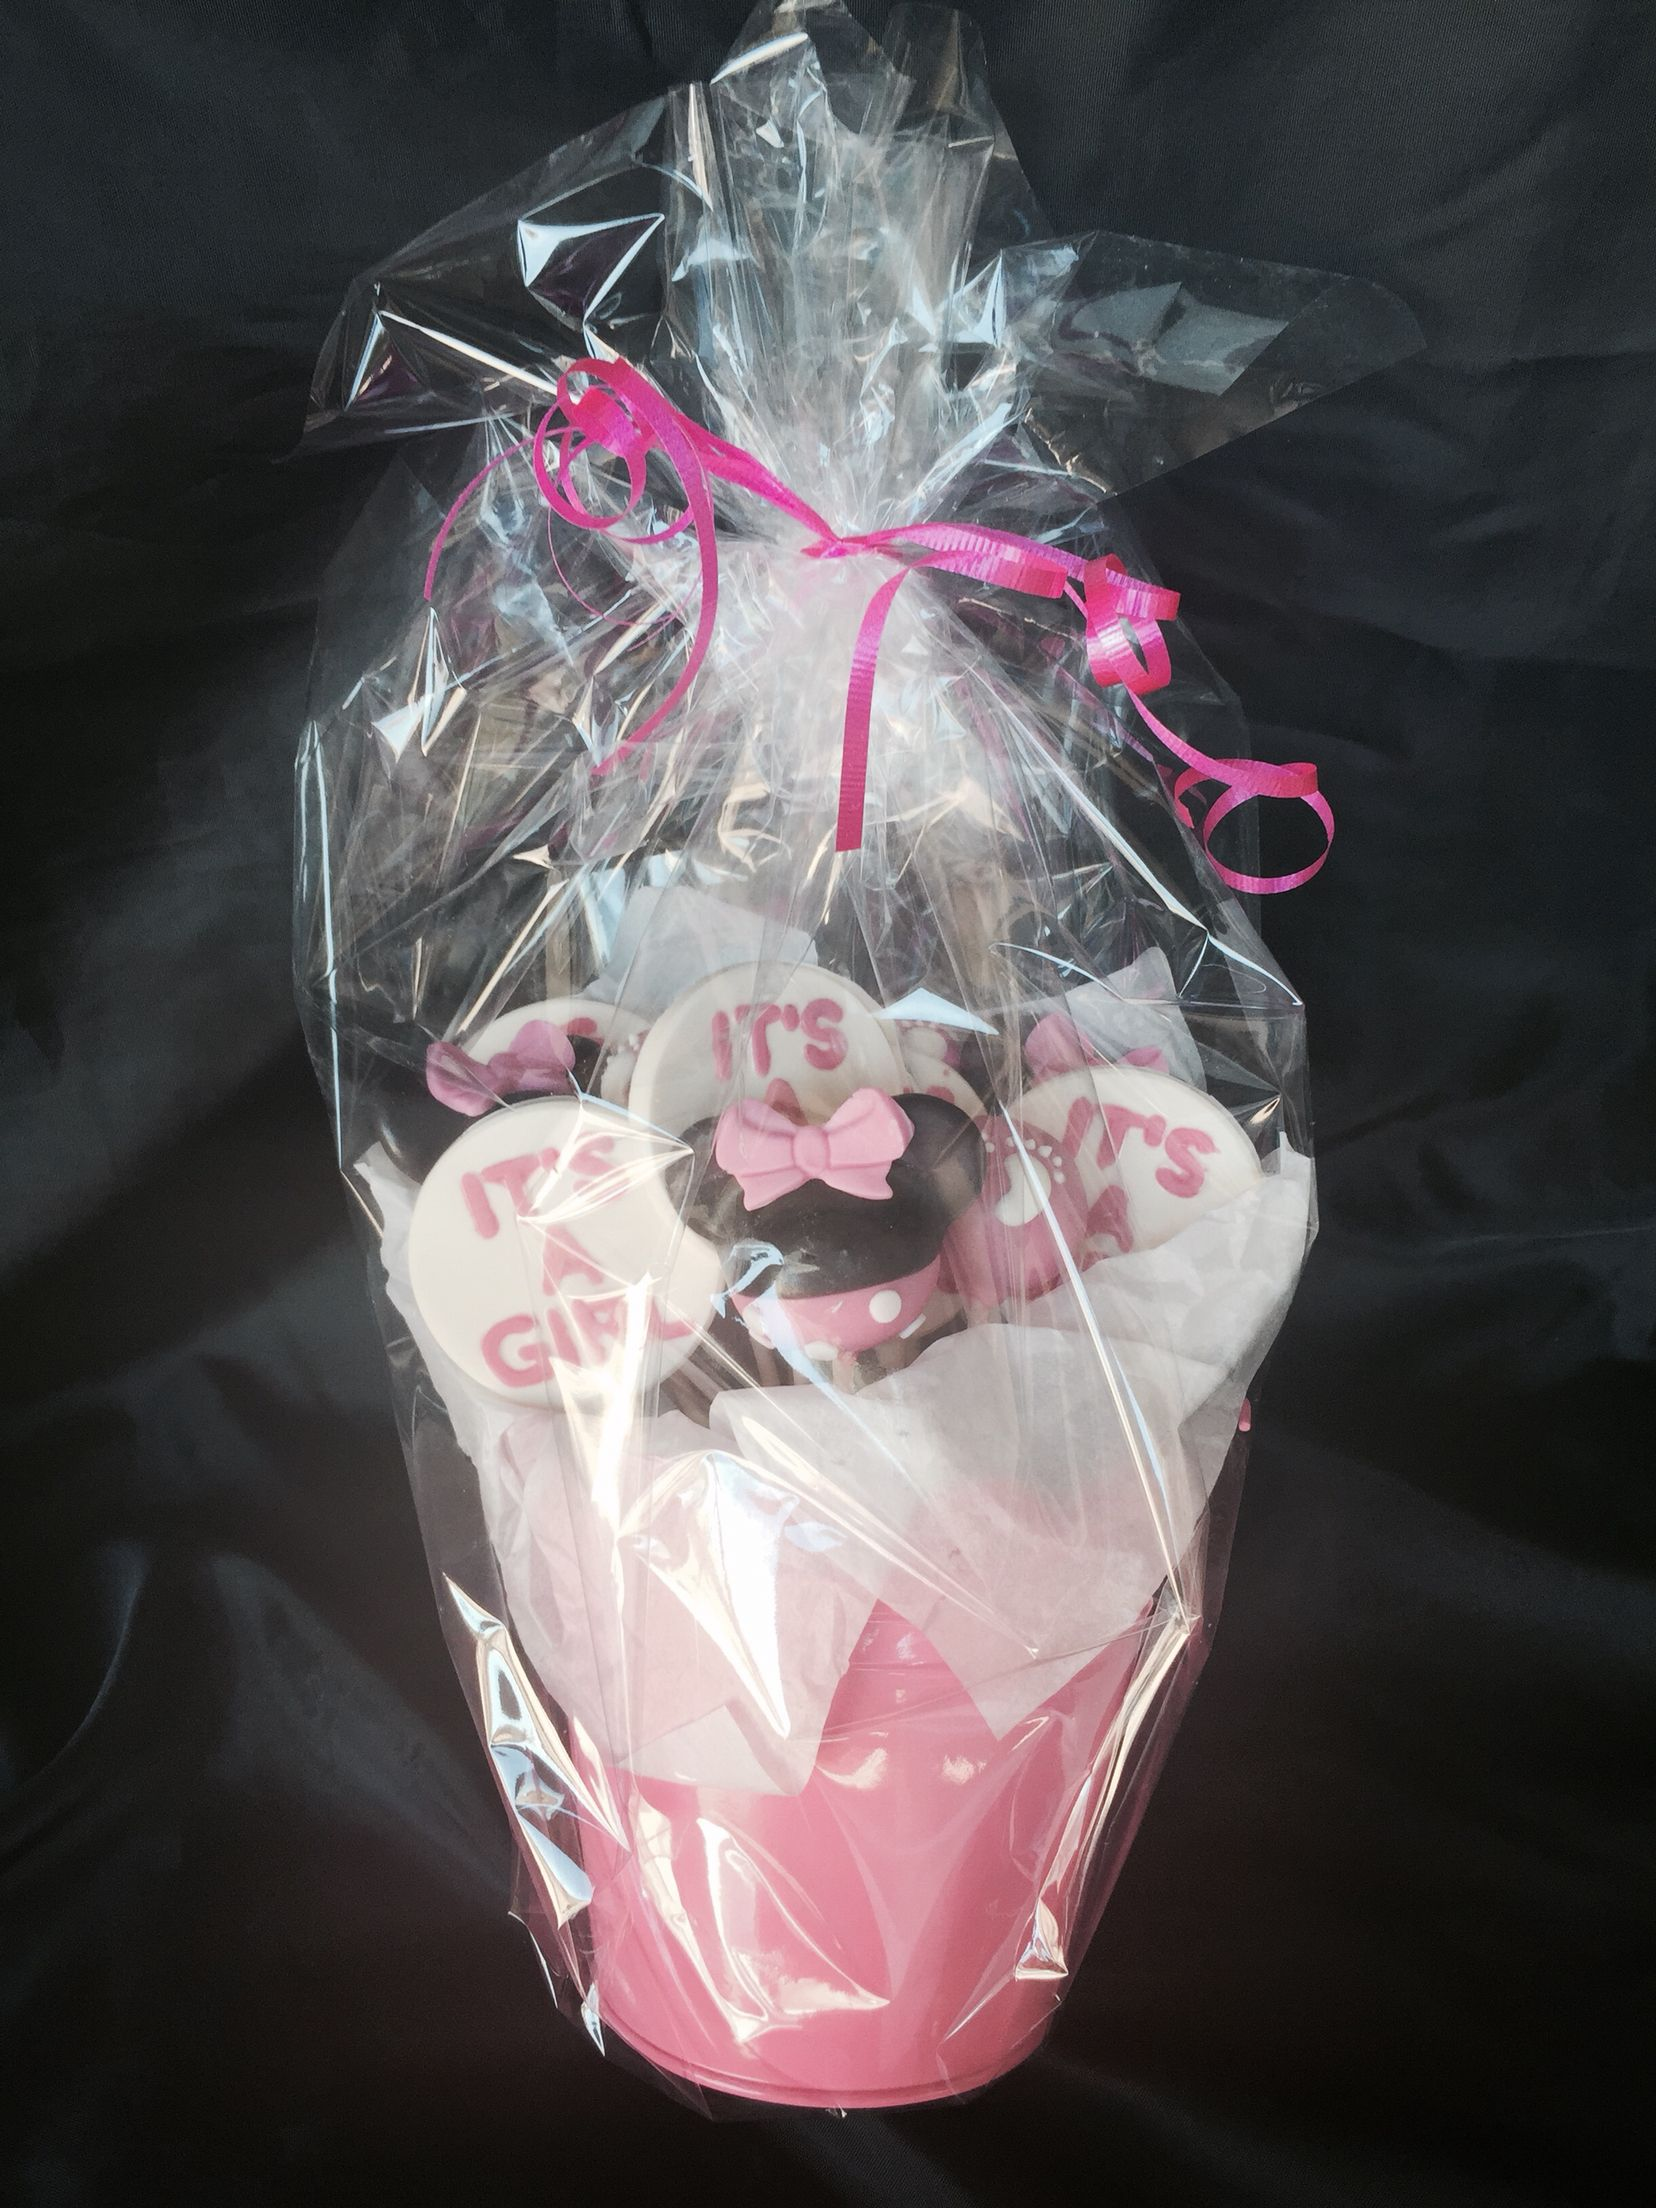 It's a girl/Minnie mouse treat basket